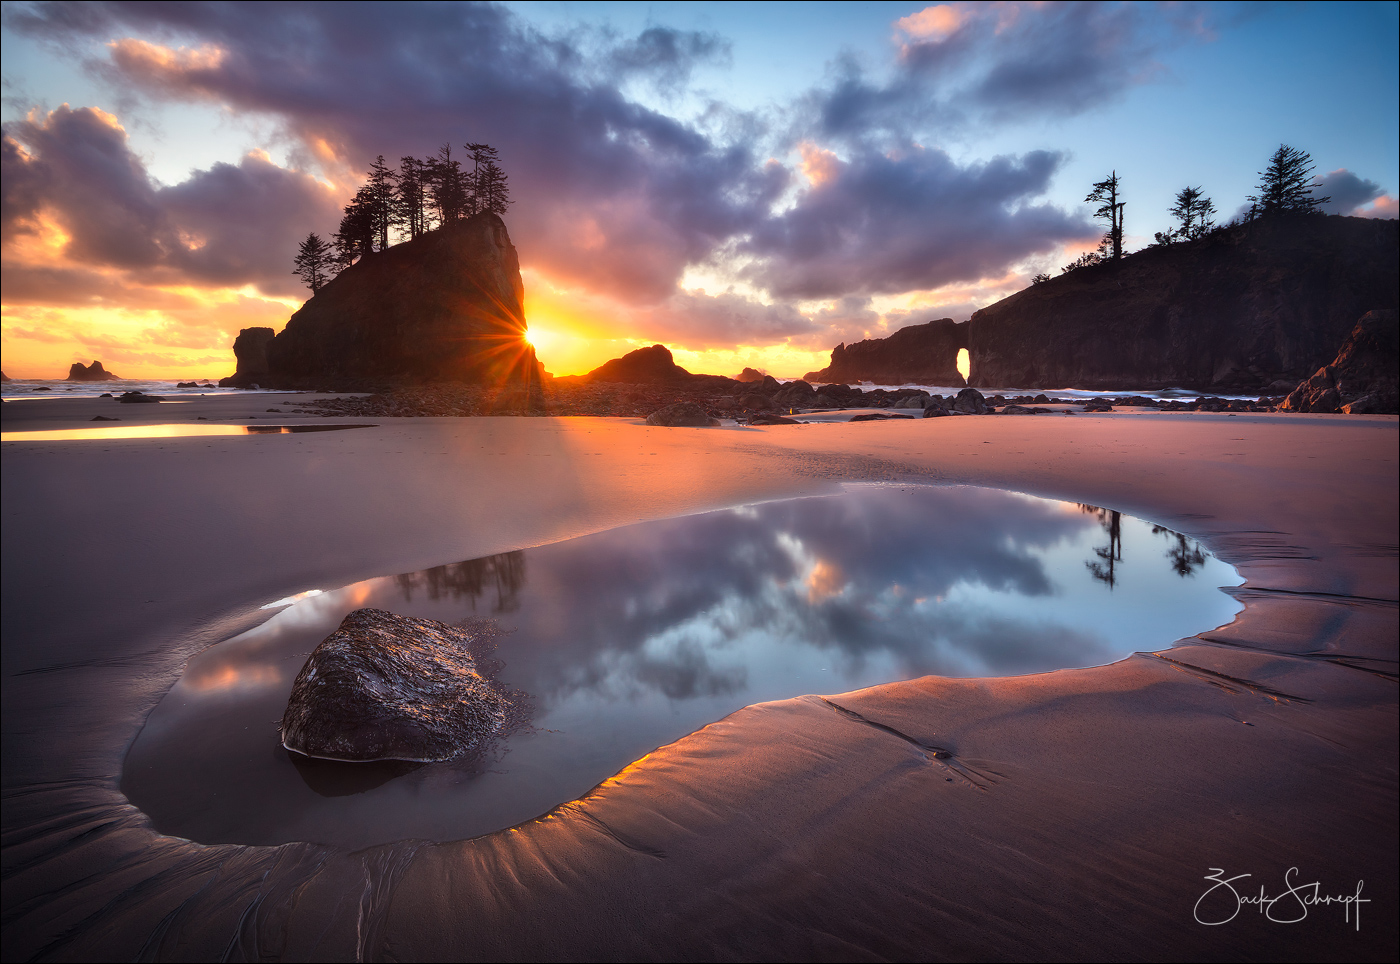 Second Beach, Washington